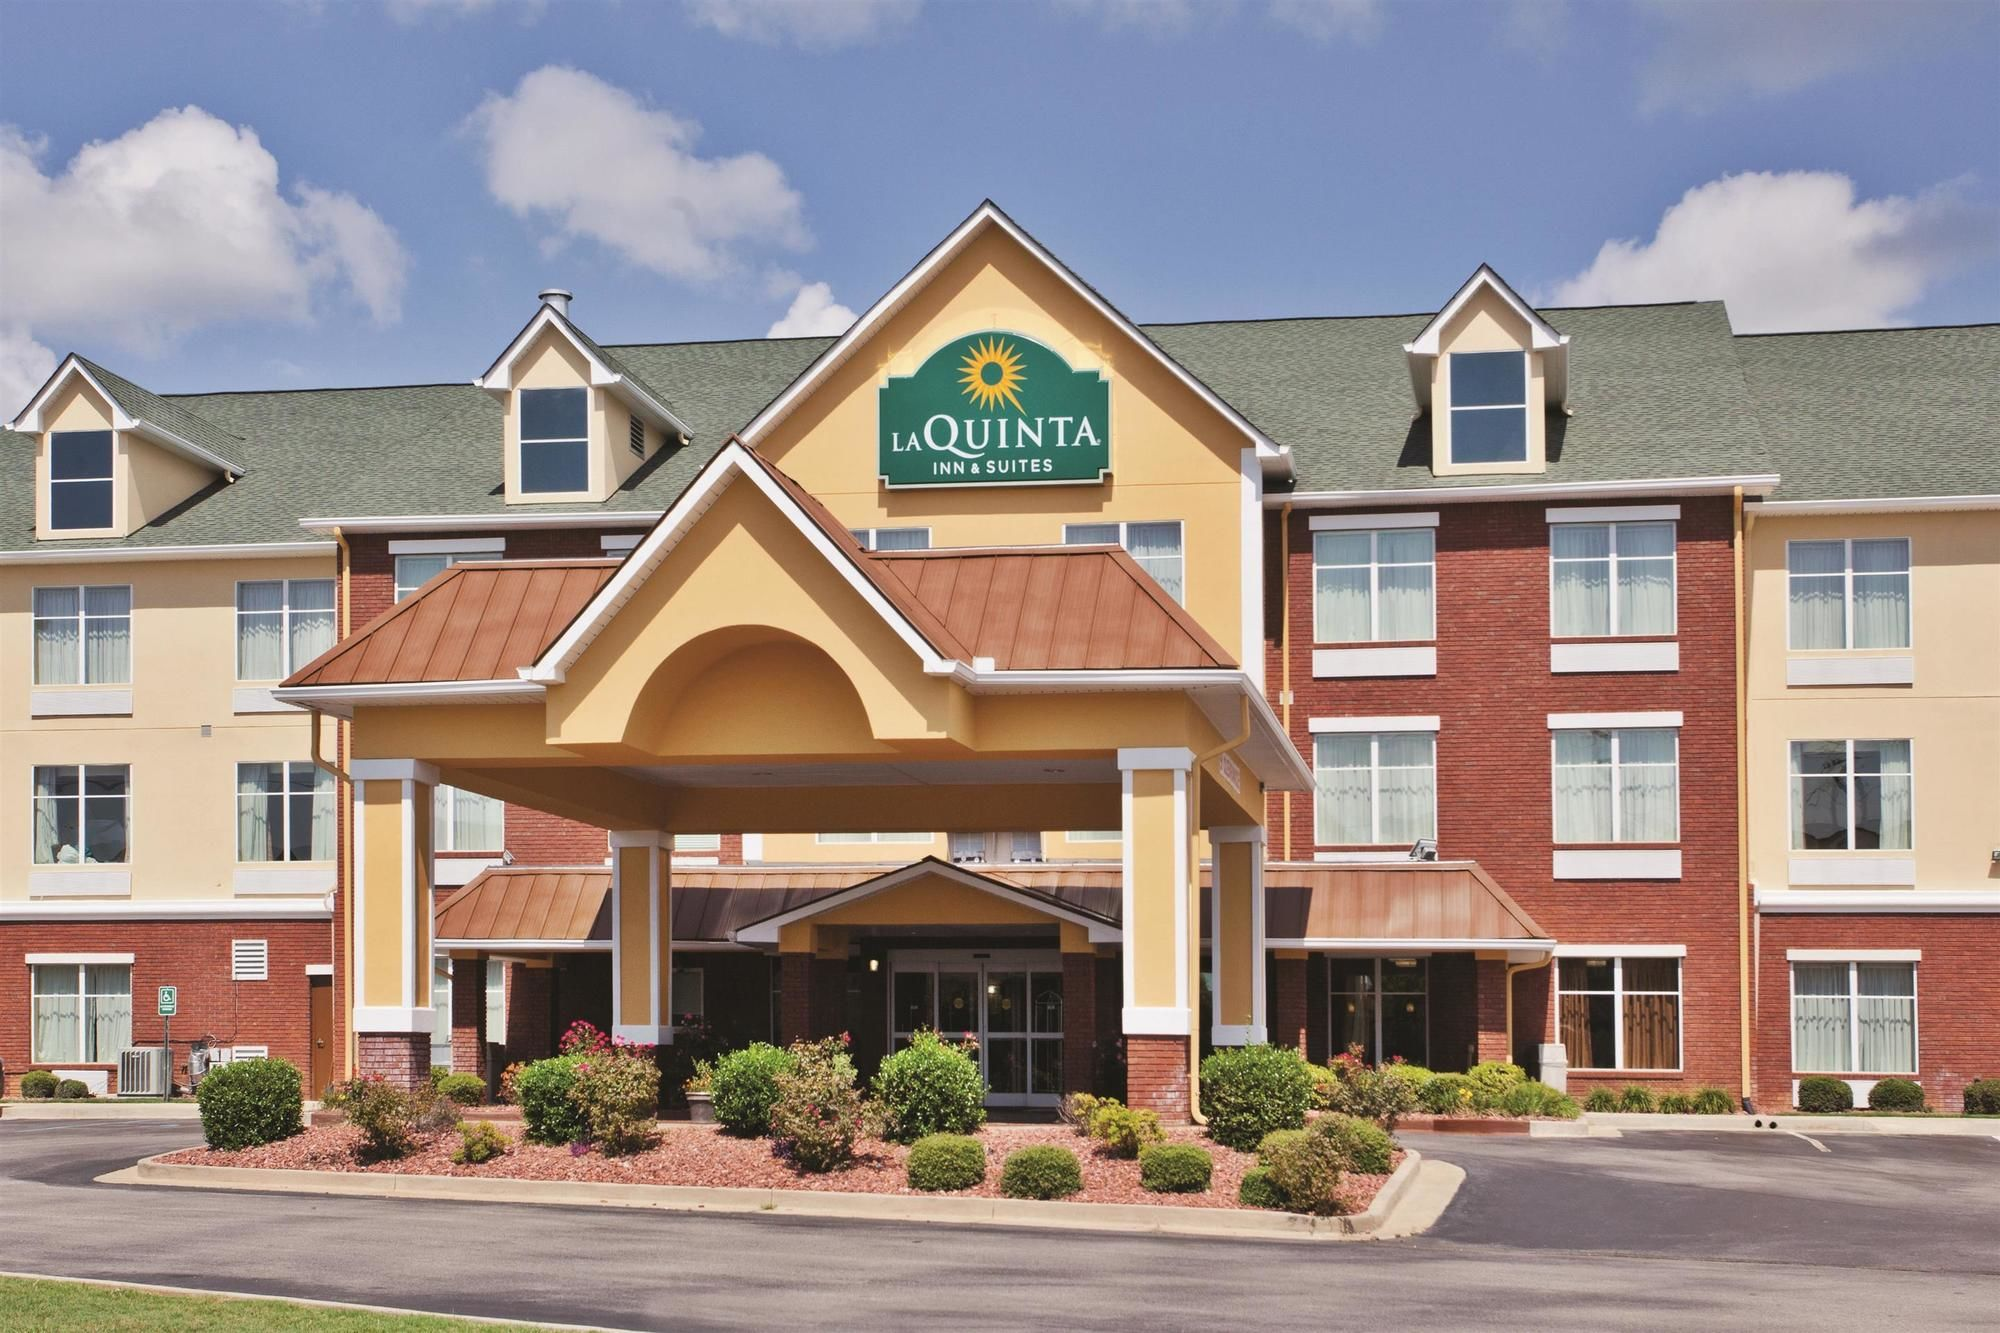 LaQuinta Inn & Suites in Oxford, AL